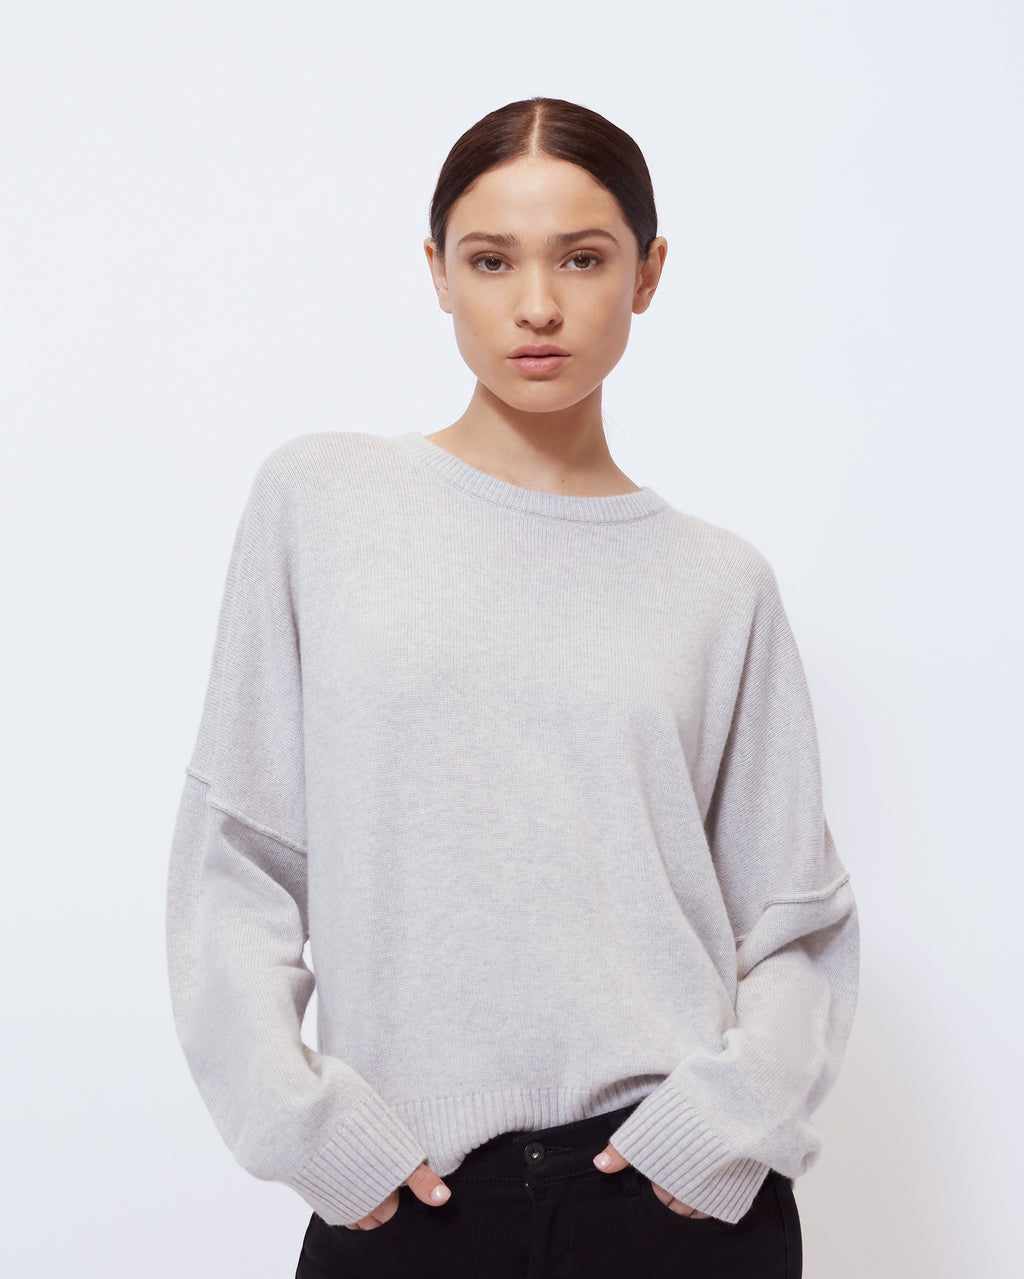 The Winslet Sweater in Heather Grey